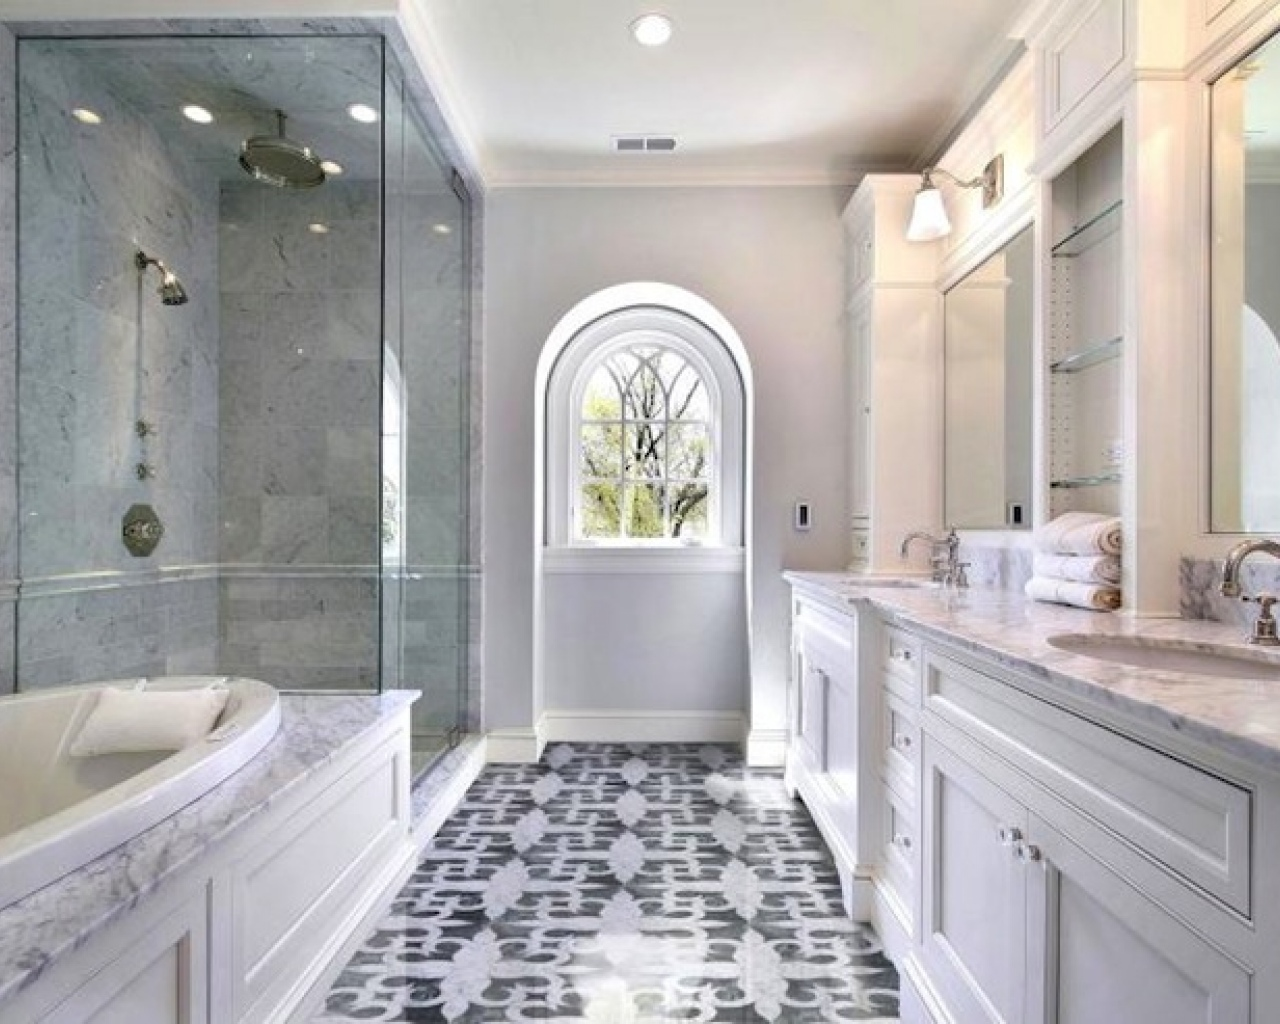 25 amazing italian bathroom tile designs ideas and pictures for Bath tile design ideas photos